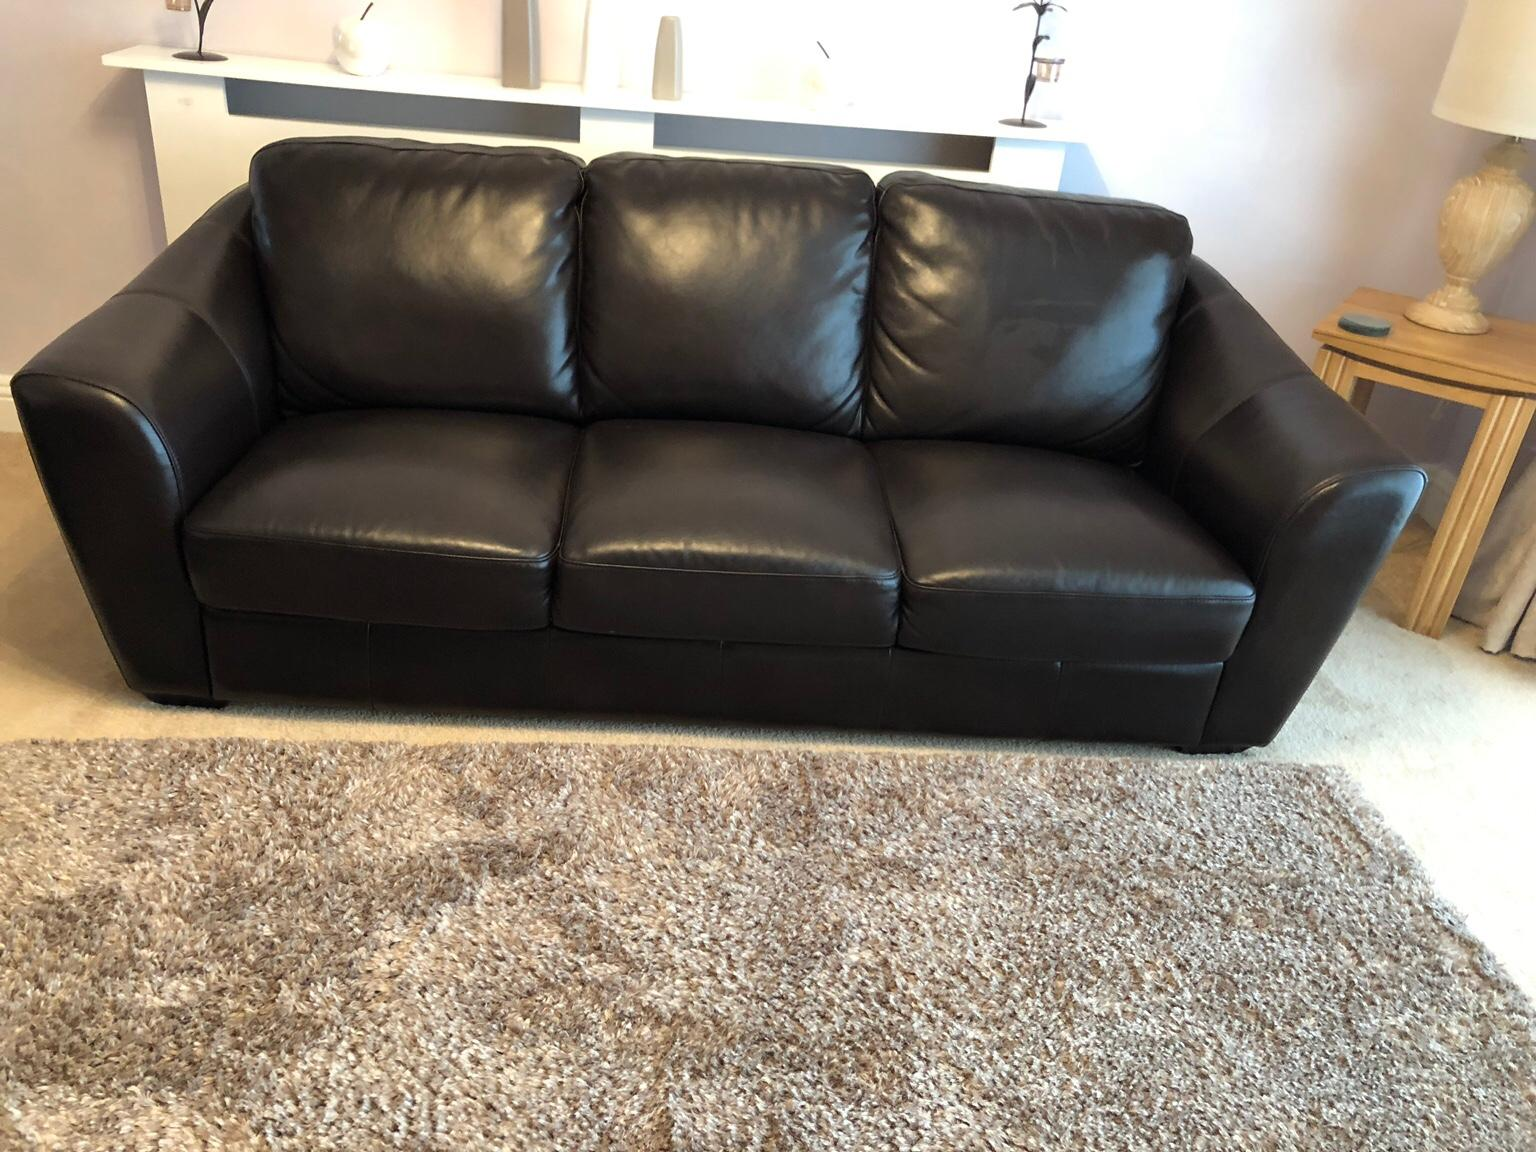 3 & 2 seater brown leather sofas